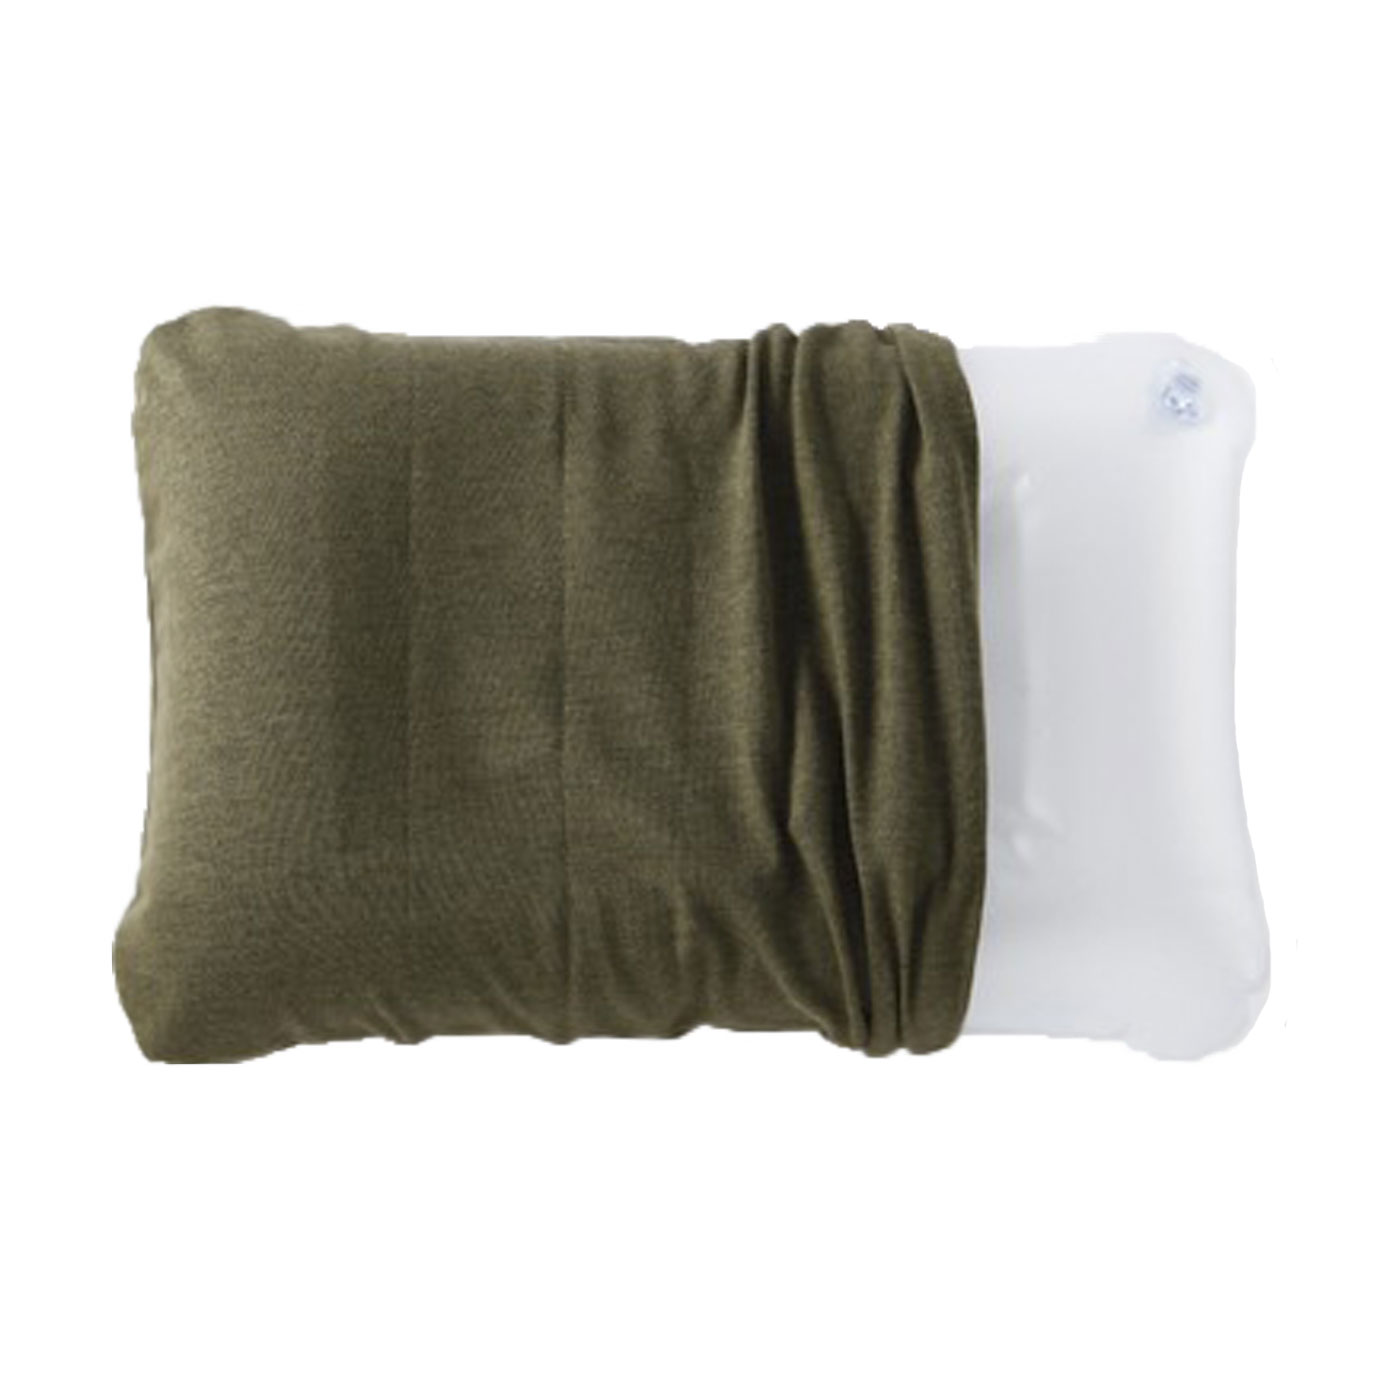 MUJI • Travel Pillow • 20 USD